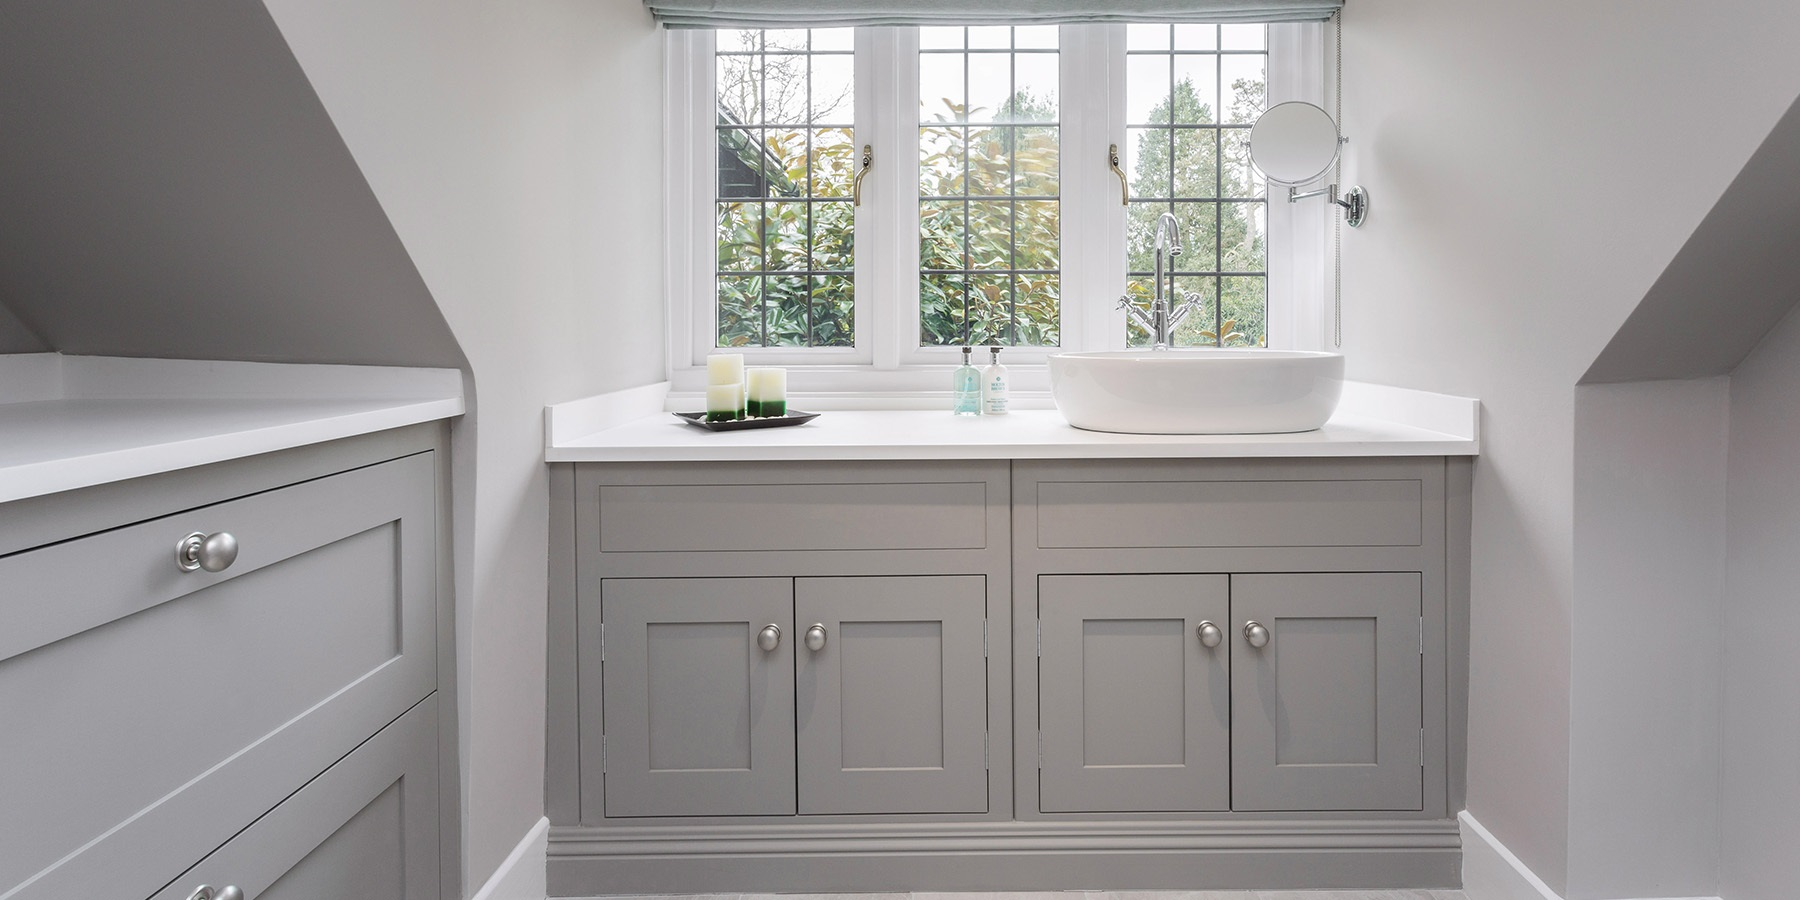 Bespoke Luxury Bathroom Vanity - Burlanes handmade grey vanity unit with vessel basin and white worktop.